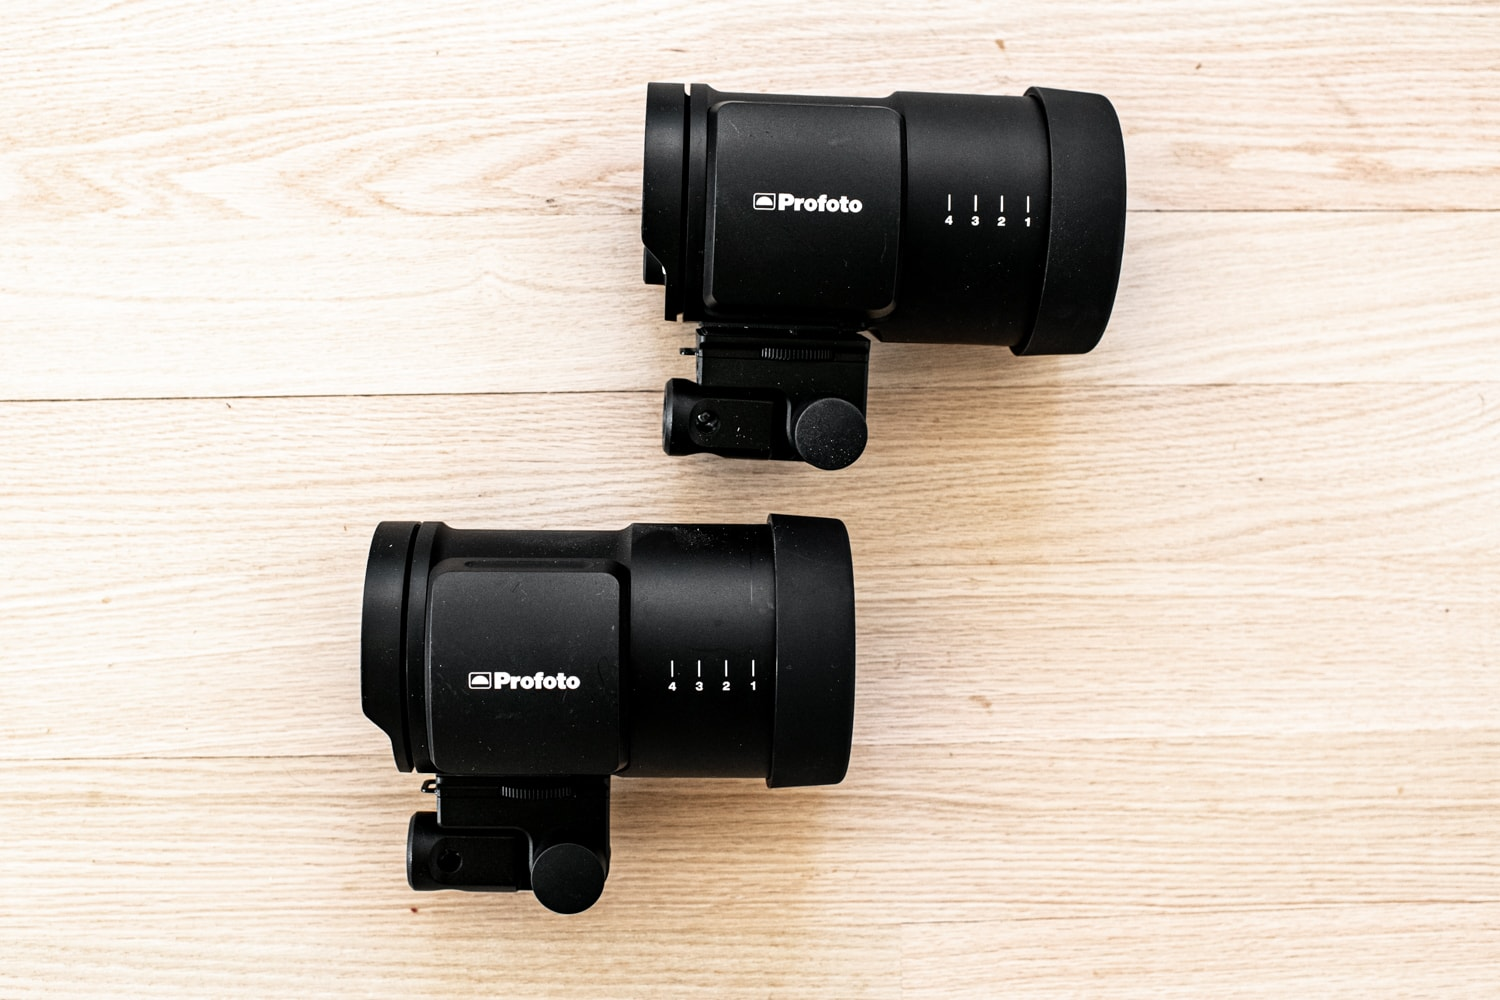 Profoto B10 off camera lights for wedding photography.